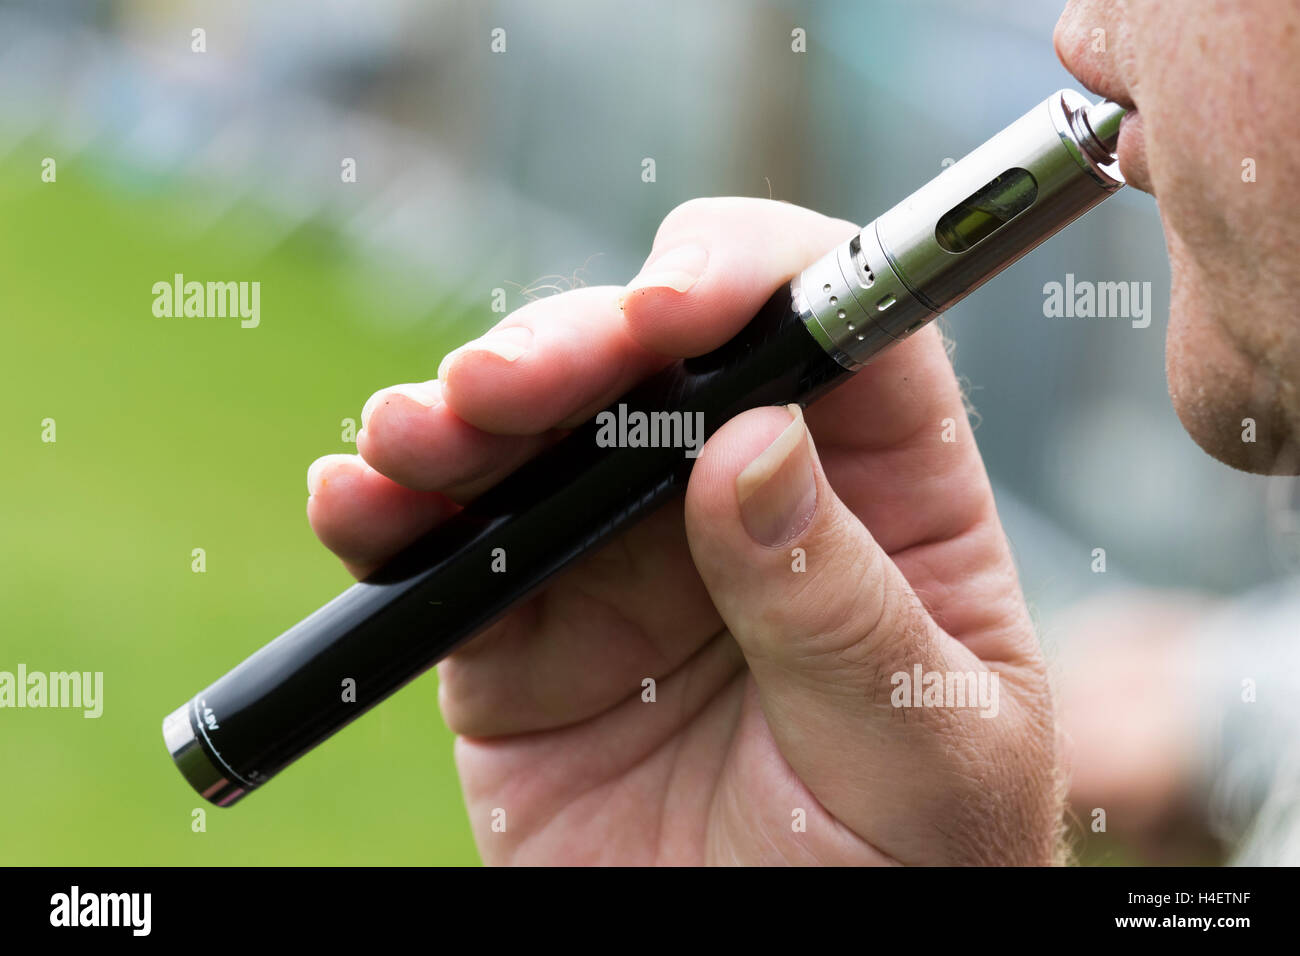 Man using an e-cigarette. - Stock Image